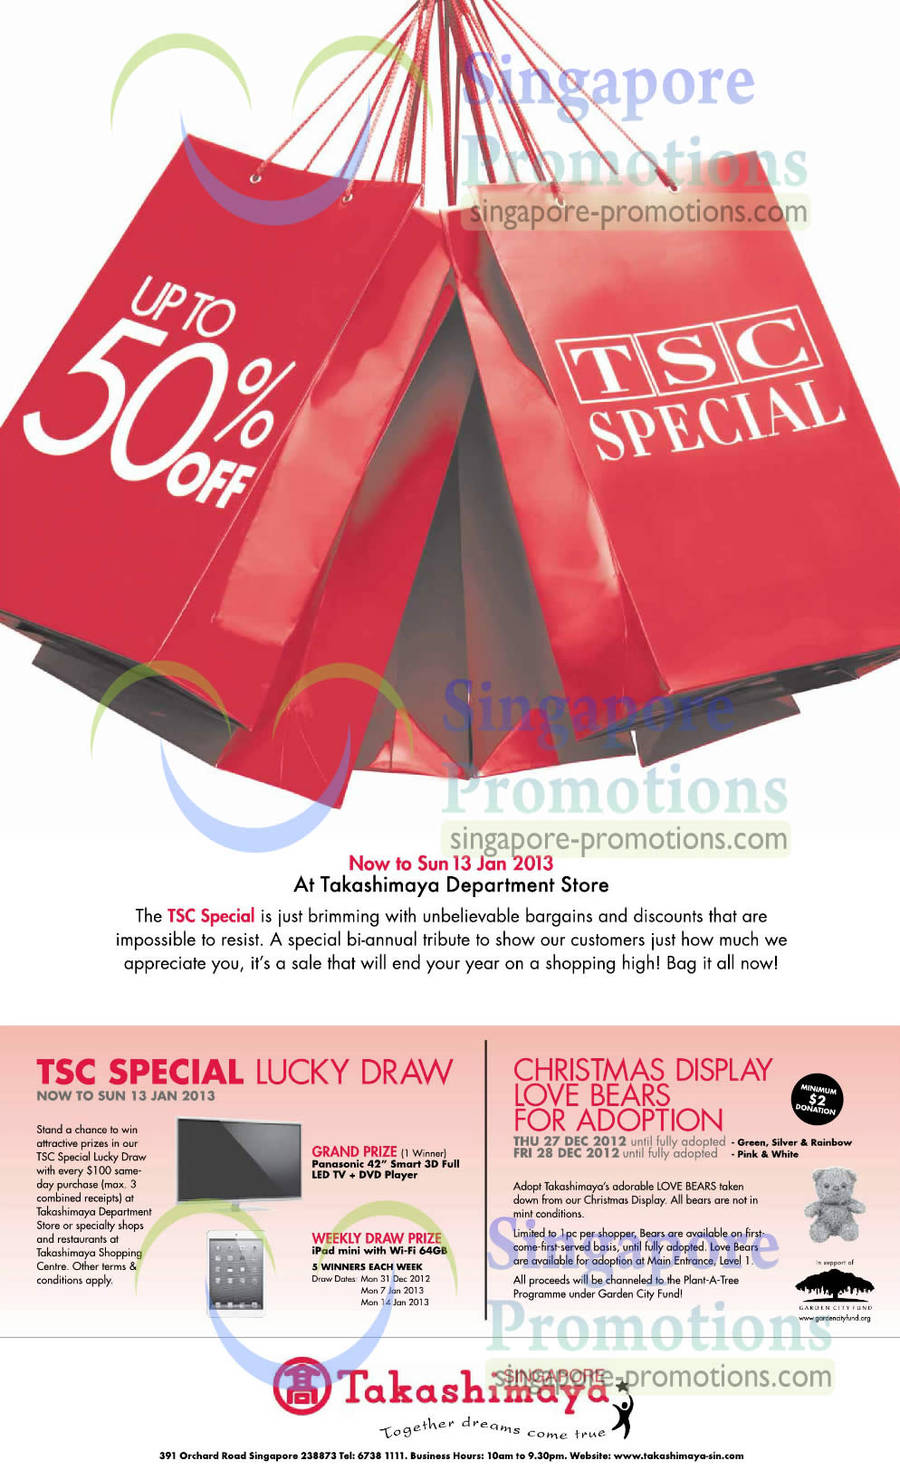 TSC Special, Lucky Draw, Love Bears For Adoption